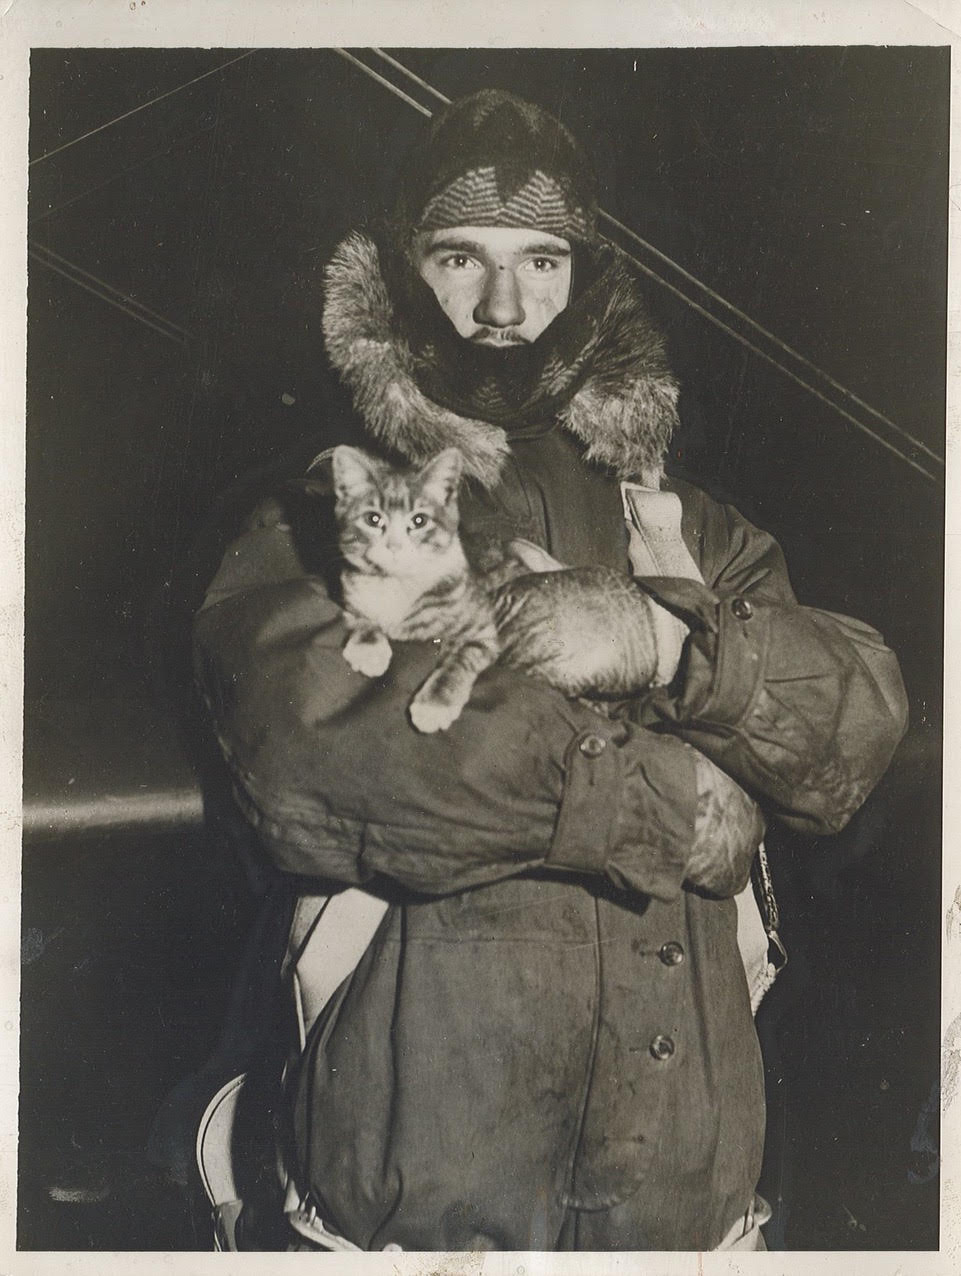 Weather observation pilot Johnny Starr in Omaha, Nebraska, December 17, 1931. Photo by ACME Newspictures. Print in [author's] personal collection.